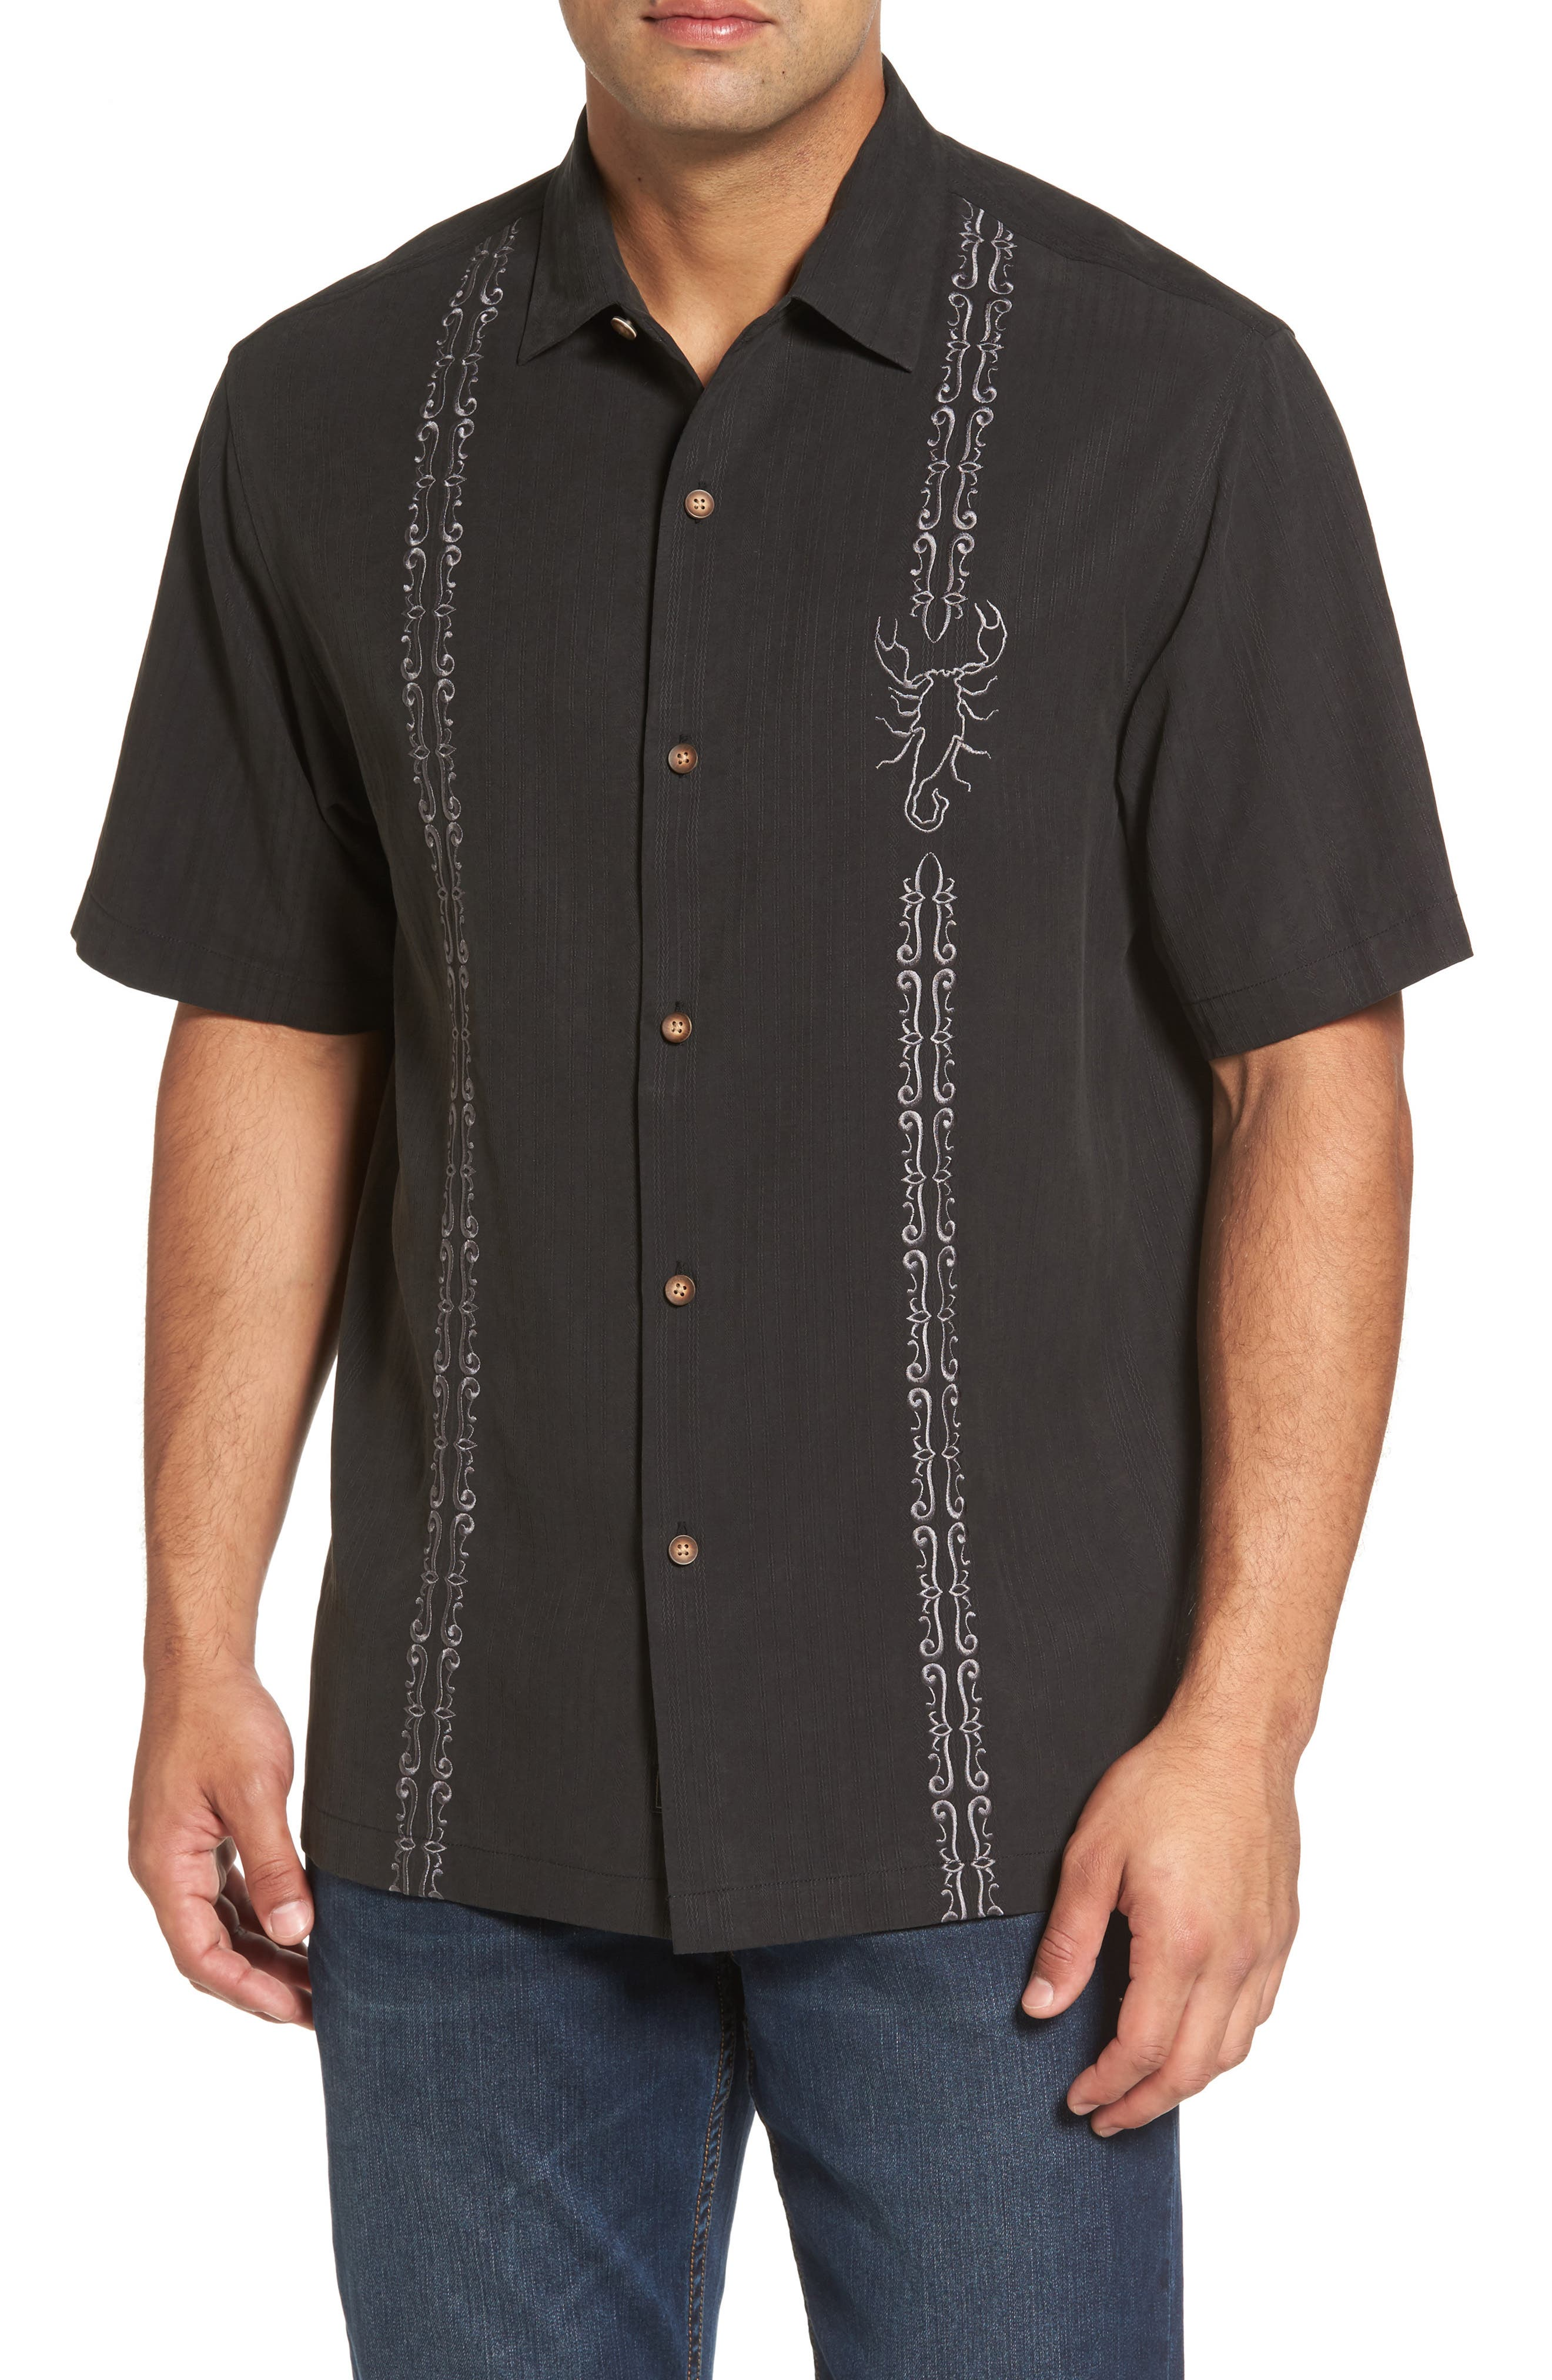 Alternate Image 2  - Tommy Bahama Drink Your Poison Embroidered Silk Woven Shirt